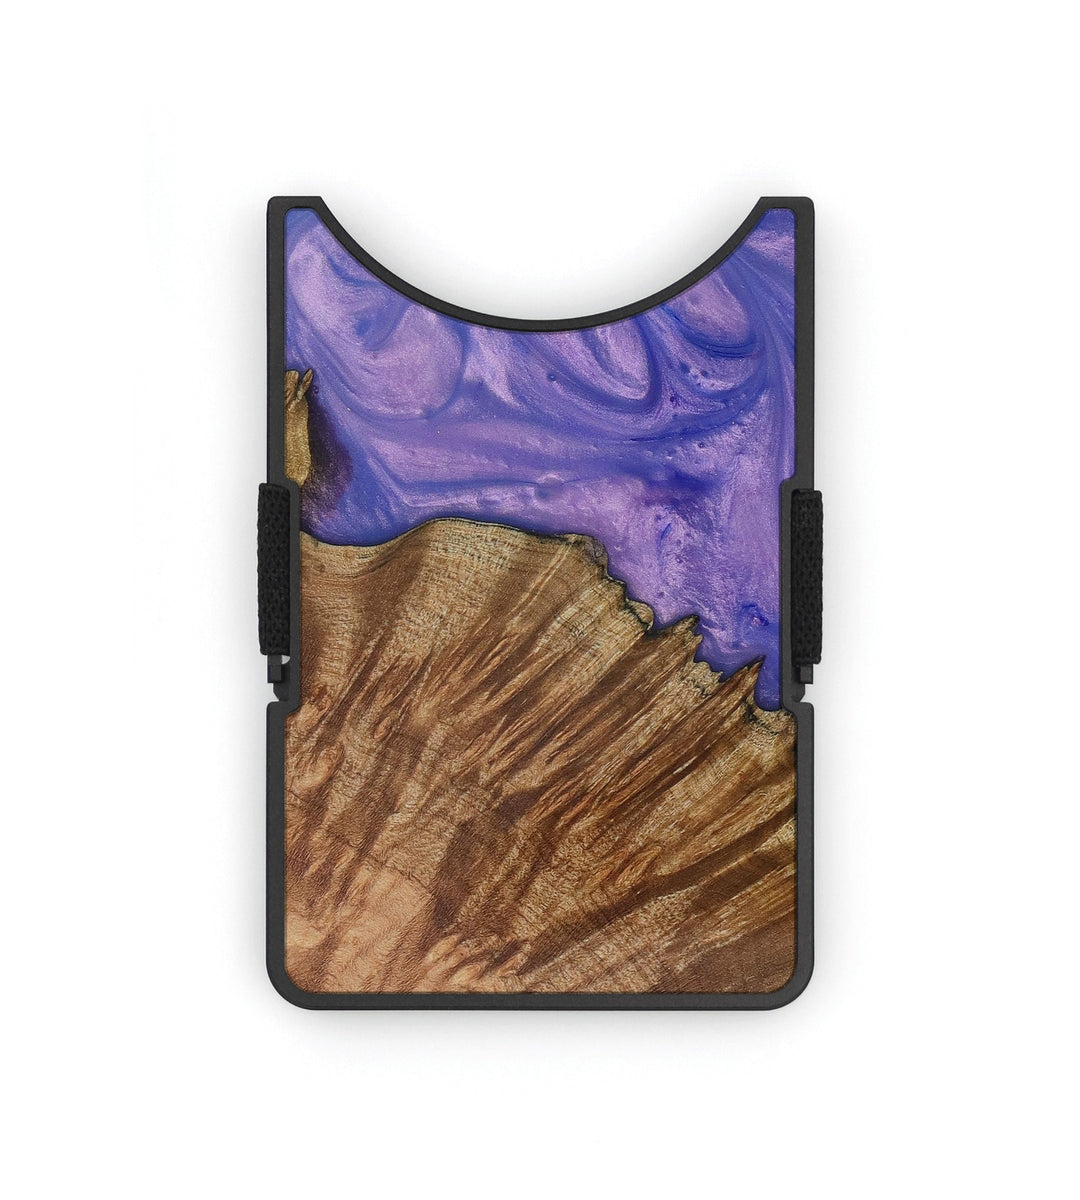 Alloy Wood+Resin Wallet - Mike (Purple, 399907)